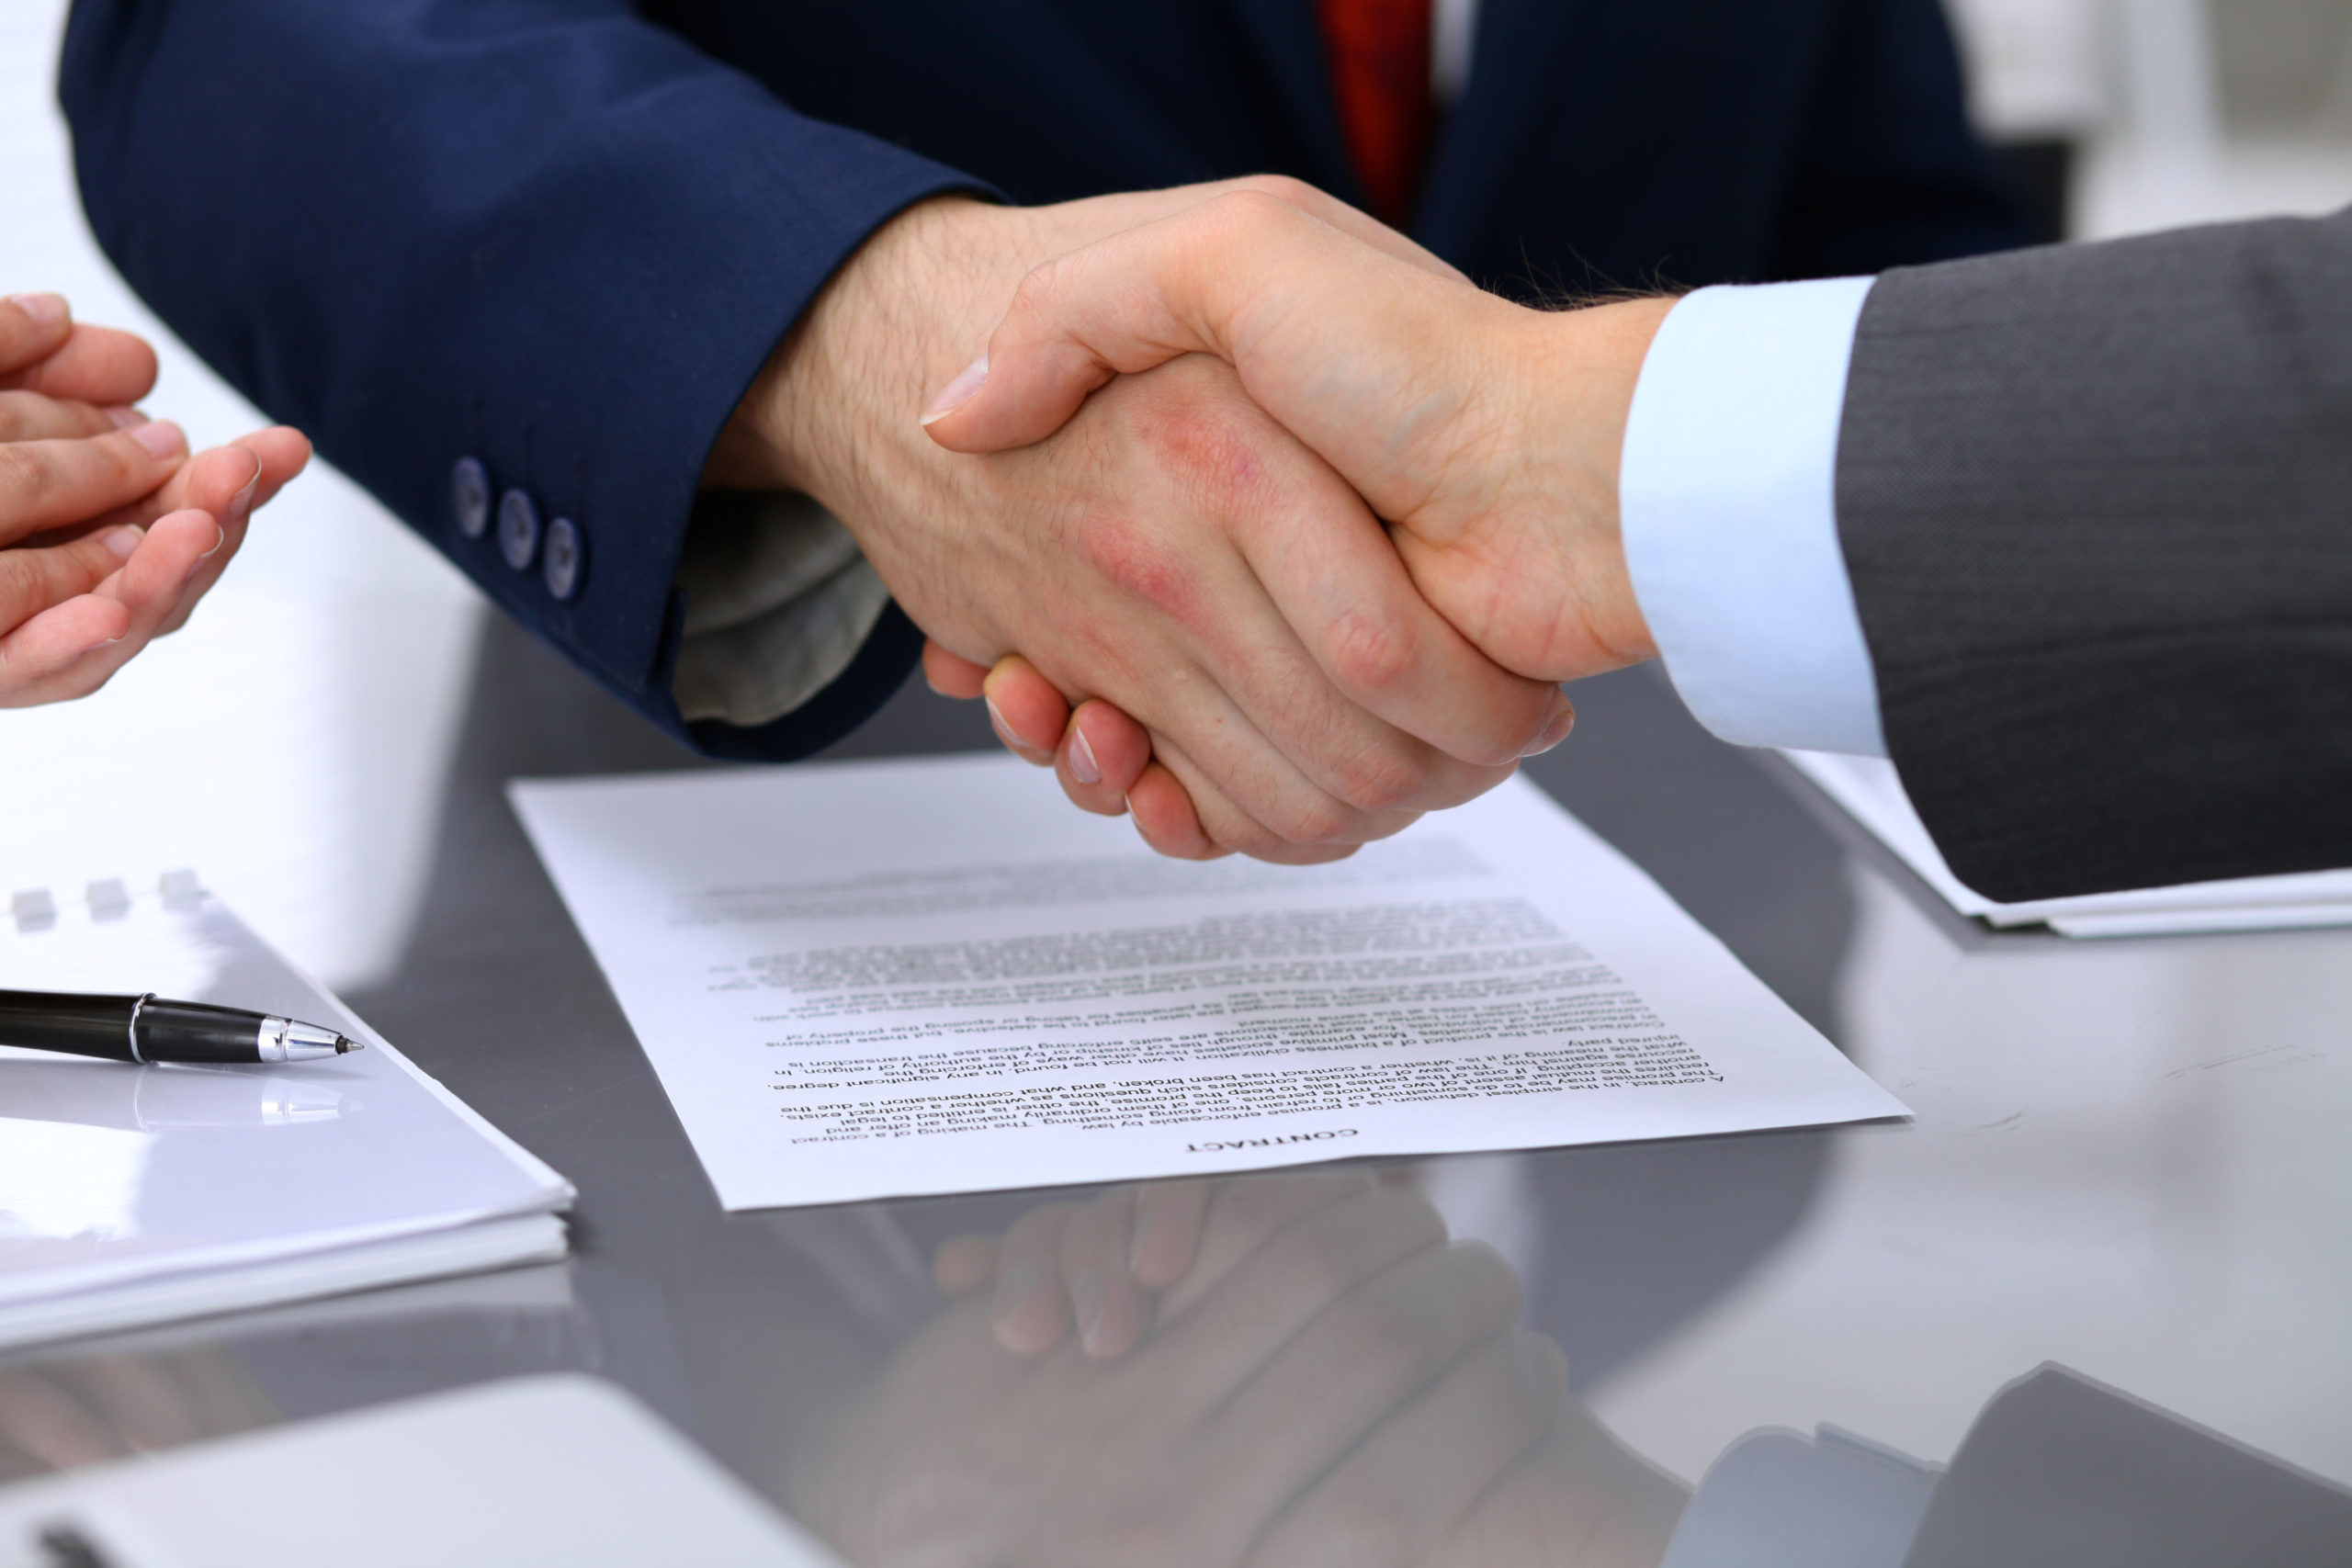 shaking hands and signing agreements